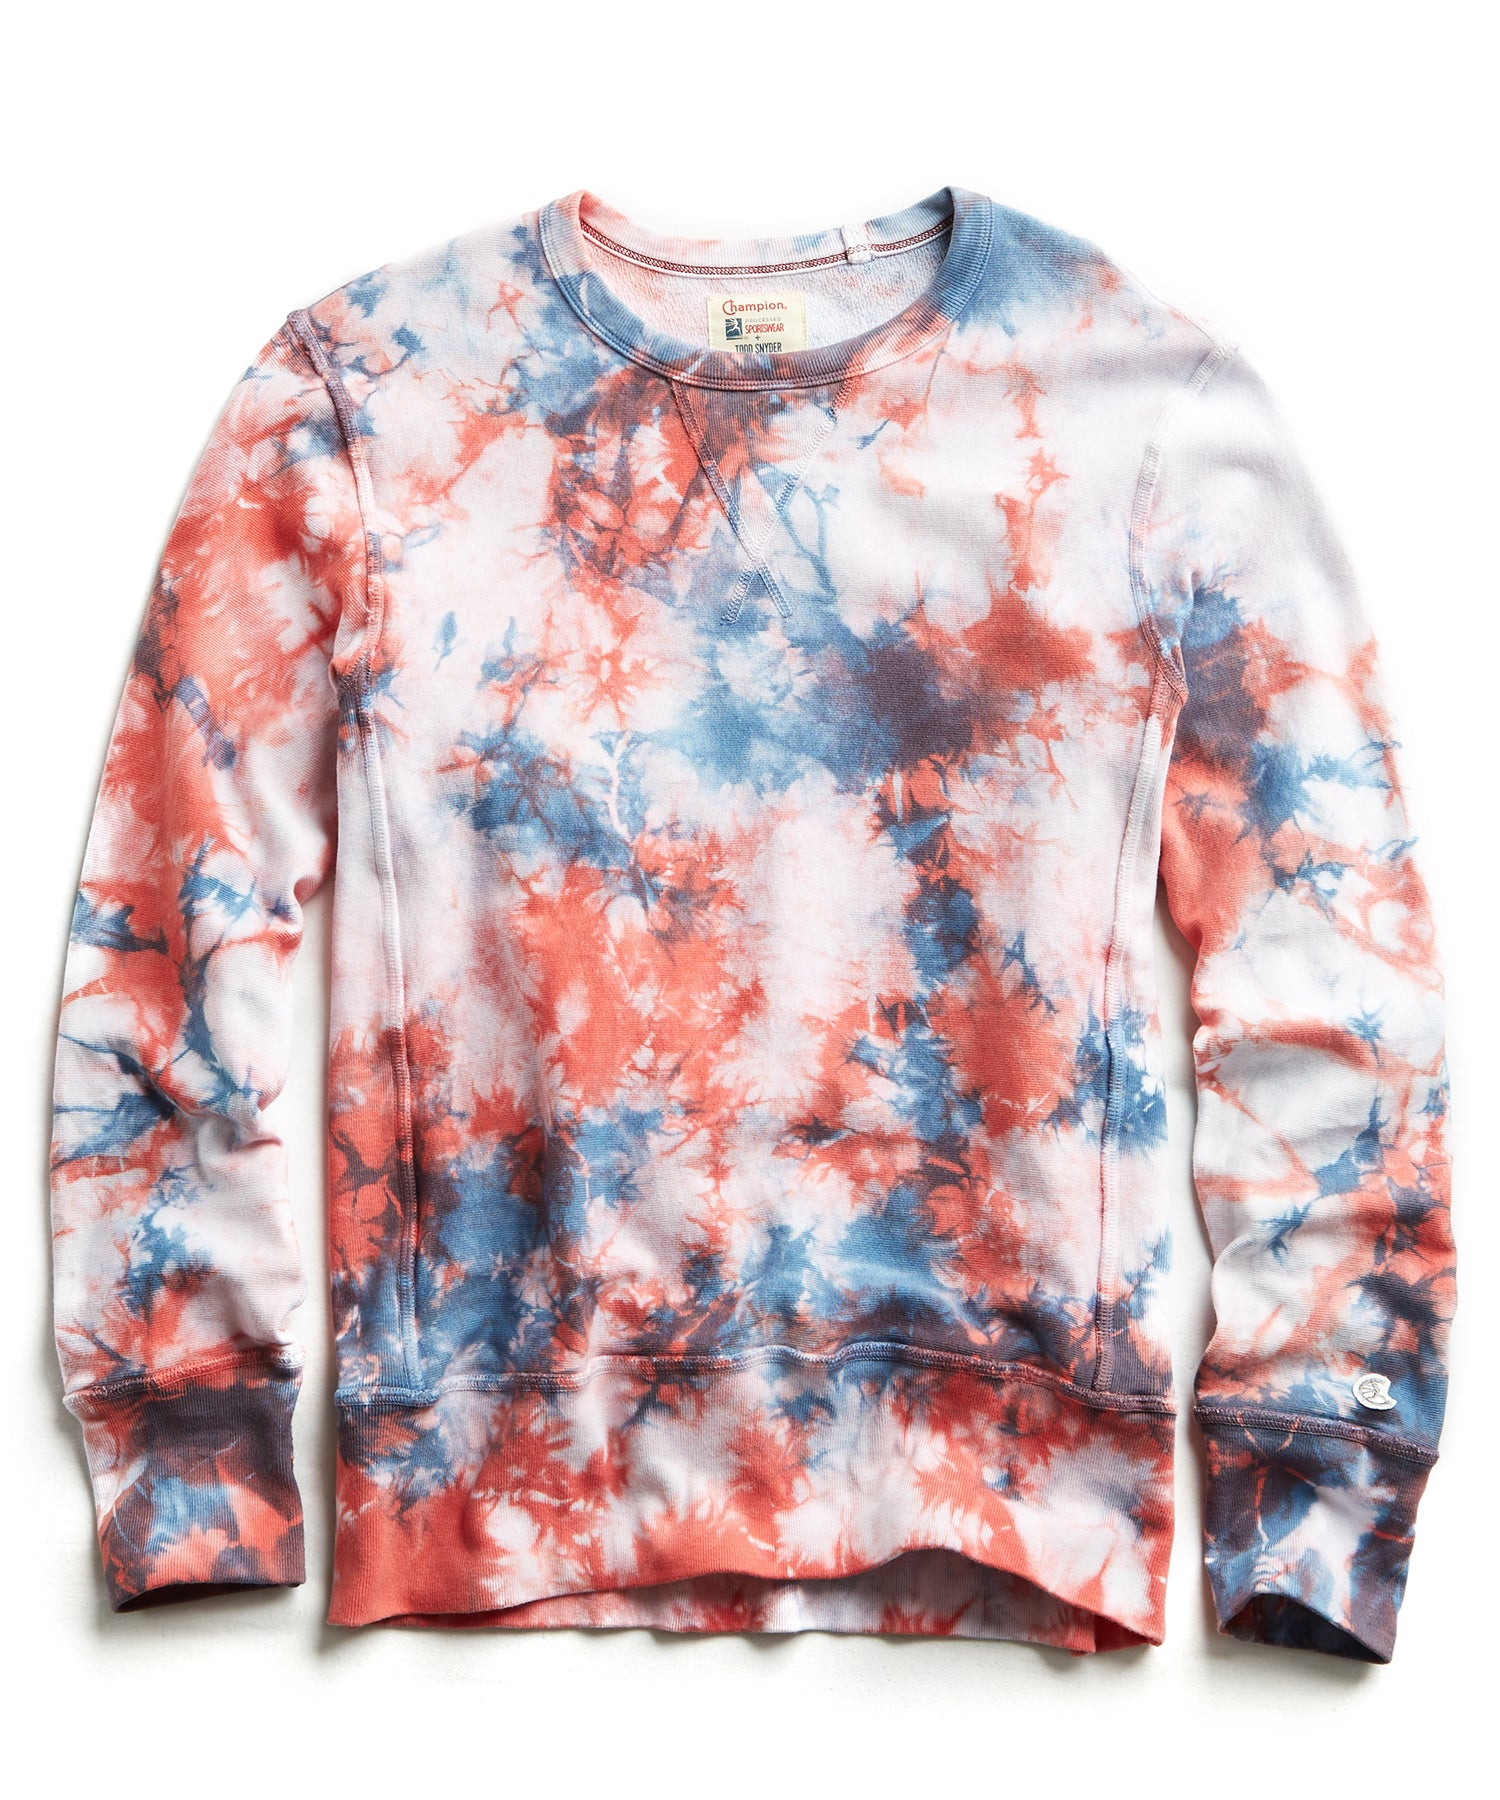 Champion Tie Dye Sweatshirt in Red